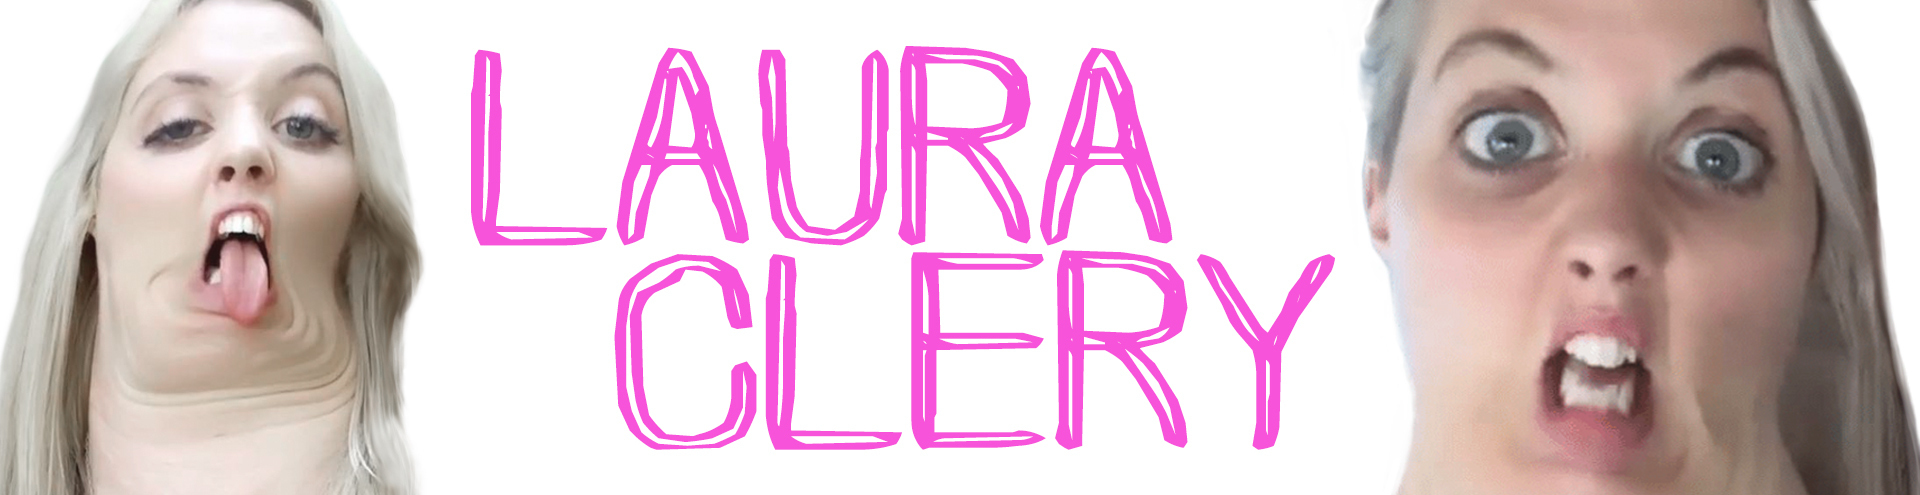 laura clery me trying to flirtlaura clery app, laura clery wiki, laura clery steven, laura clery me trying to flirt, laura clery steven videos, laura clery instagram, laura clery bio, laura clery birthday, laura clery snapchat, laura clery ivy, laura clery height, laura clery feet, laura clery youtube, laura clery husband, laura clery vine, laura clery hungry, laura clery the league, laura clery boyfriend, laura clery facebook, laura clery til death